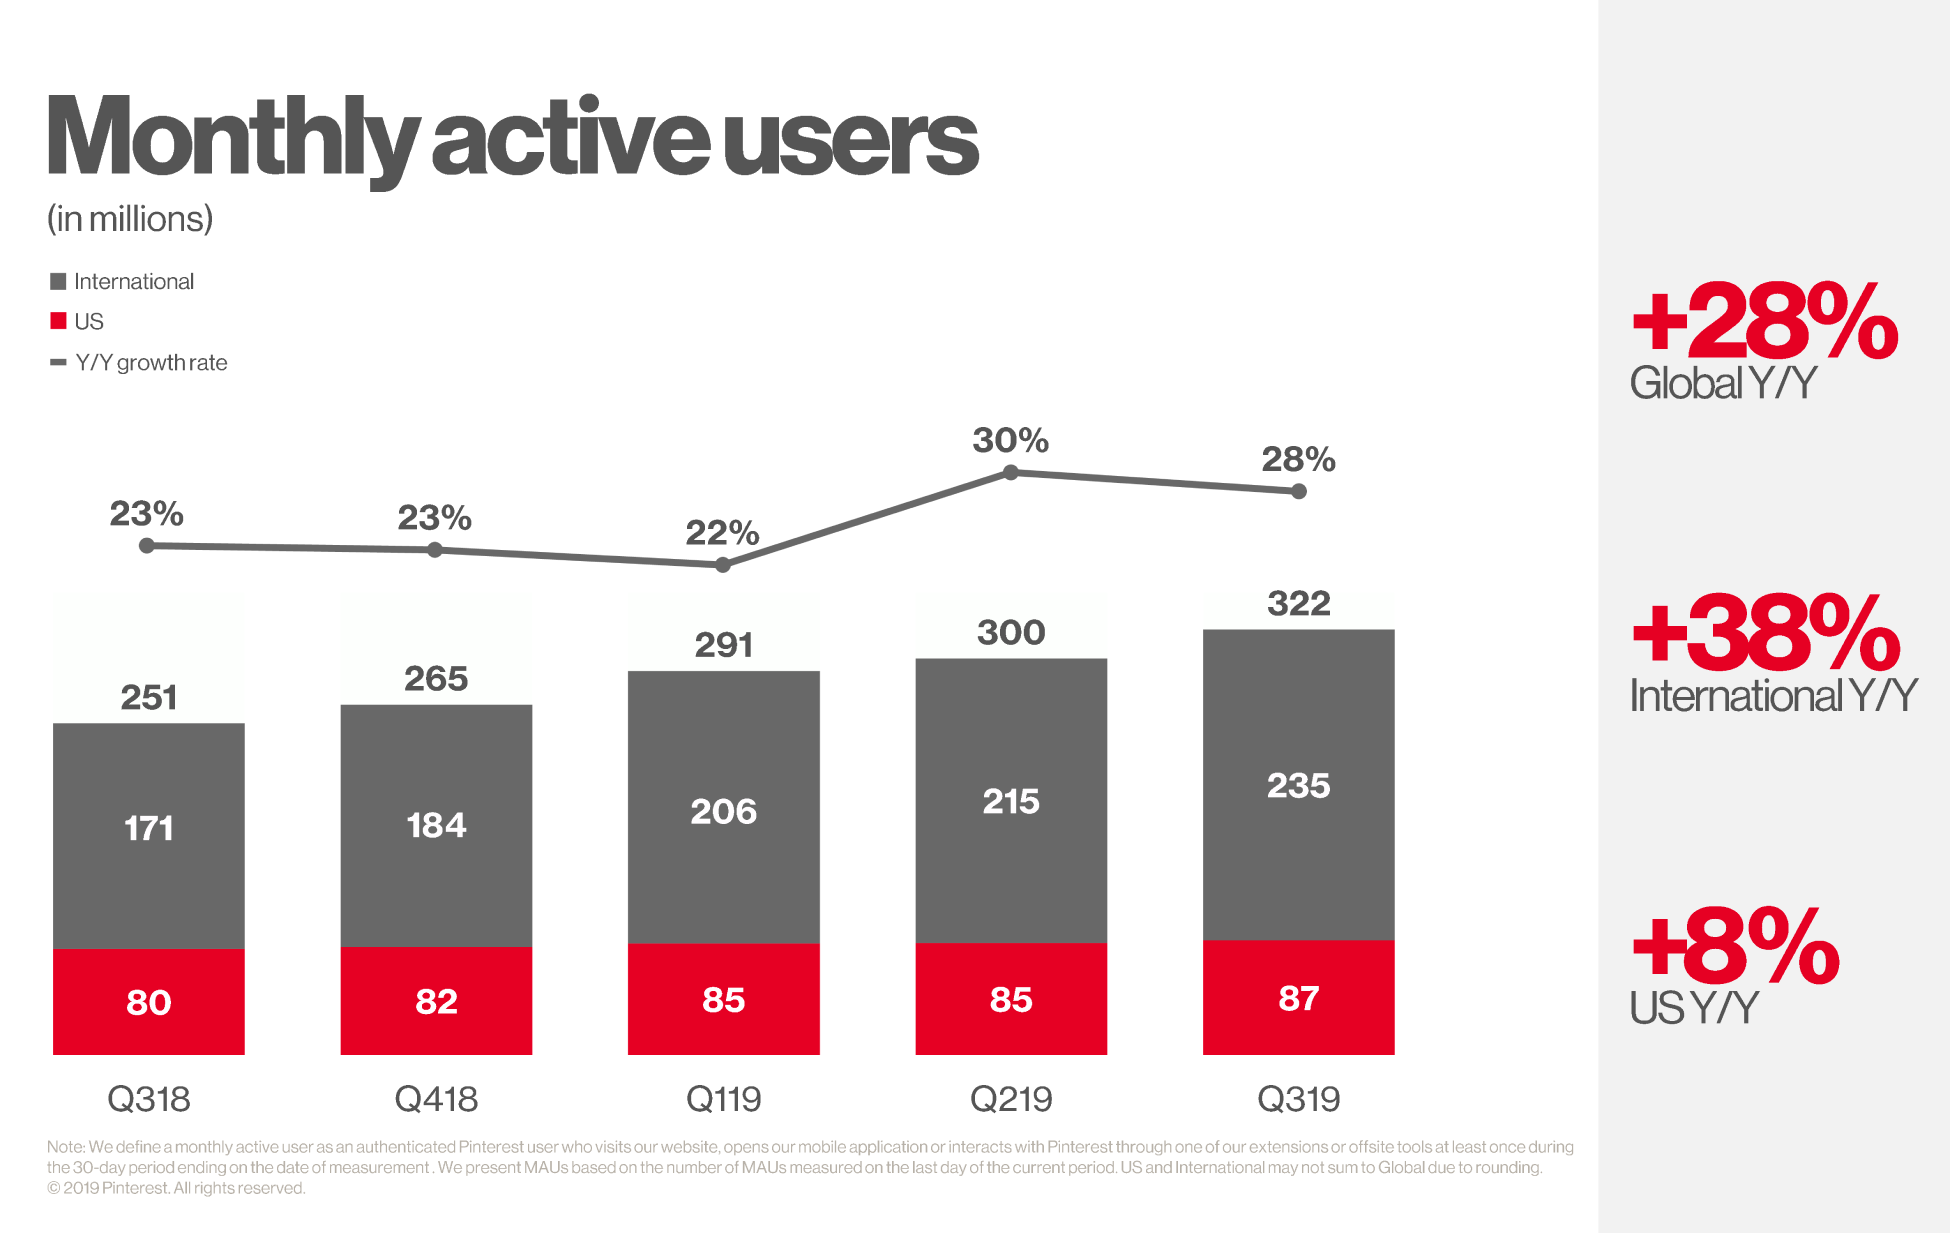 Global Monthly Active Users (MAUs) grew 28% year over year to 322 million